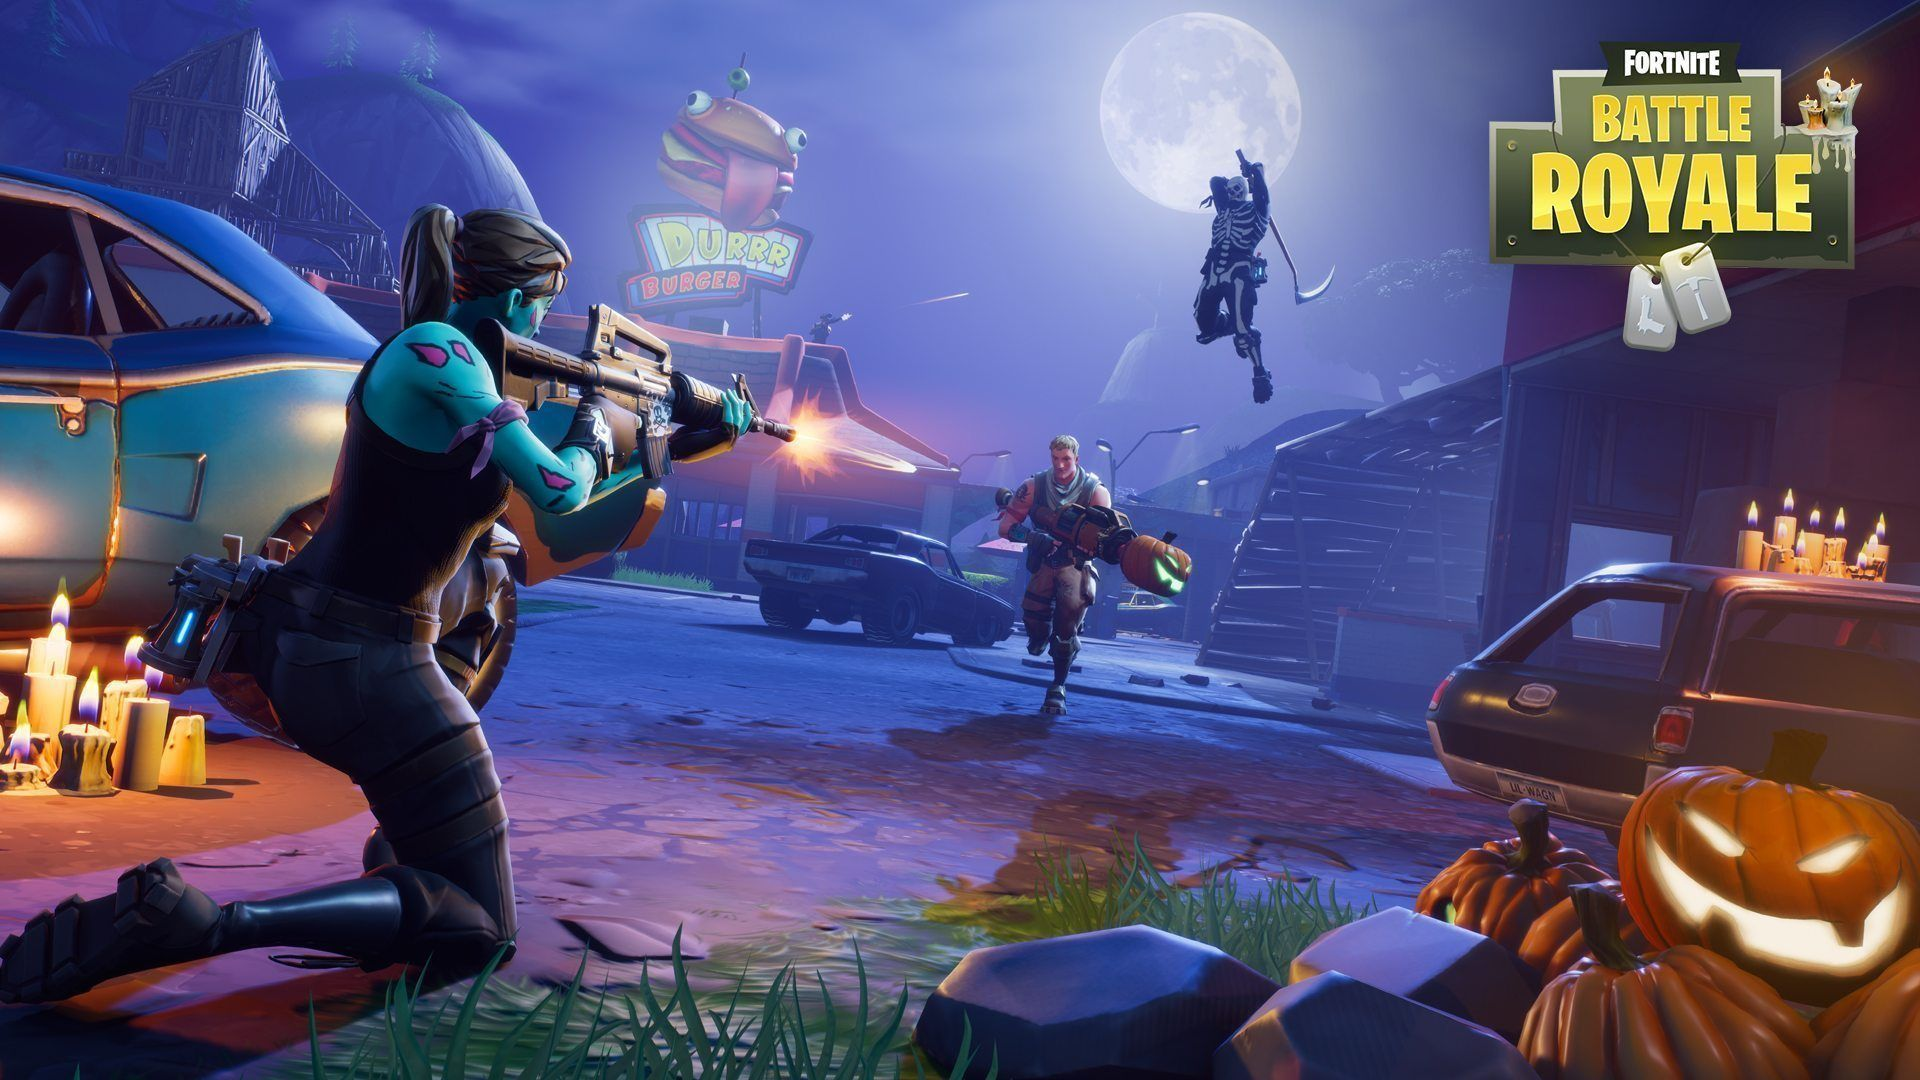 Epic Fortnite Wallpapers Top Free Epic Fortnite